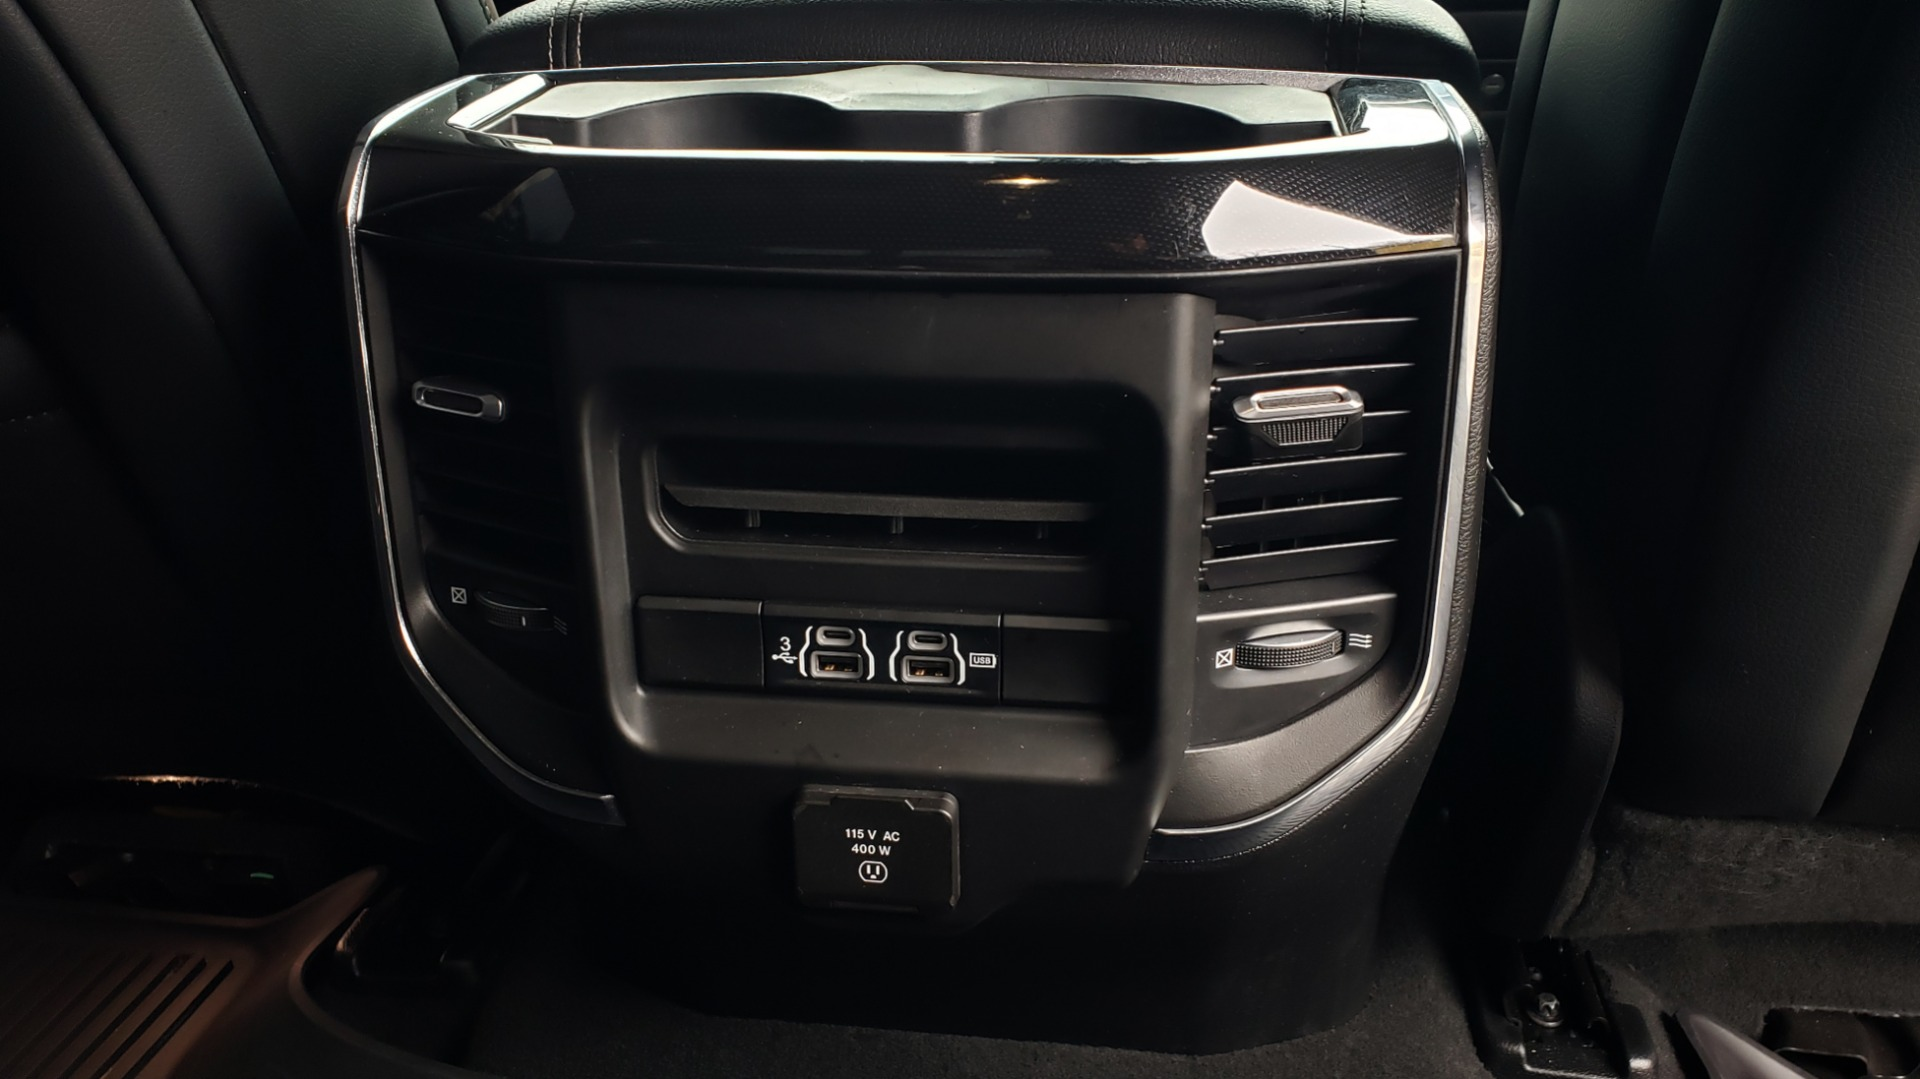 Used 2019 Ram 1500 LARAMIE SPORT / 2WD / 5.7L HEMI / NAV / BLIND SPOT / HTD STS / REARVIEW for sale Sold at Formula Imports in Charlotte NC 28227 94